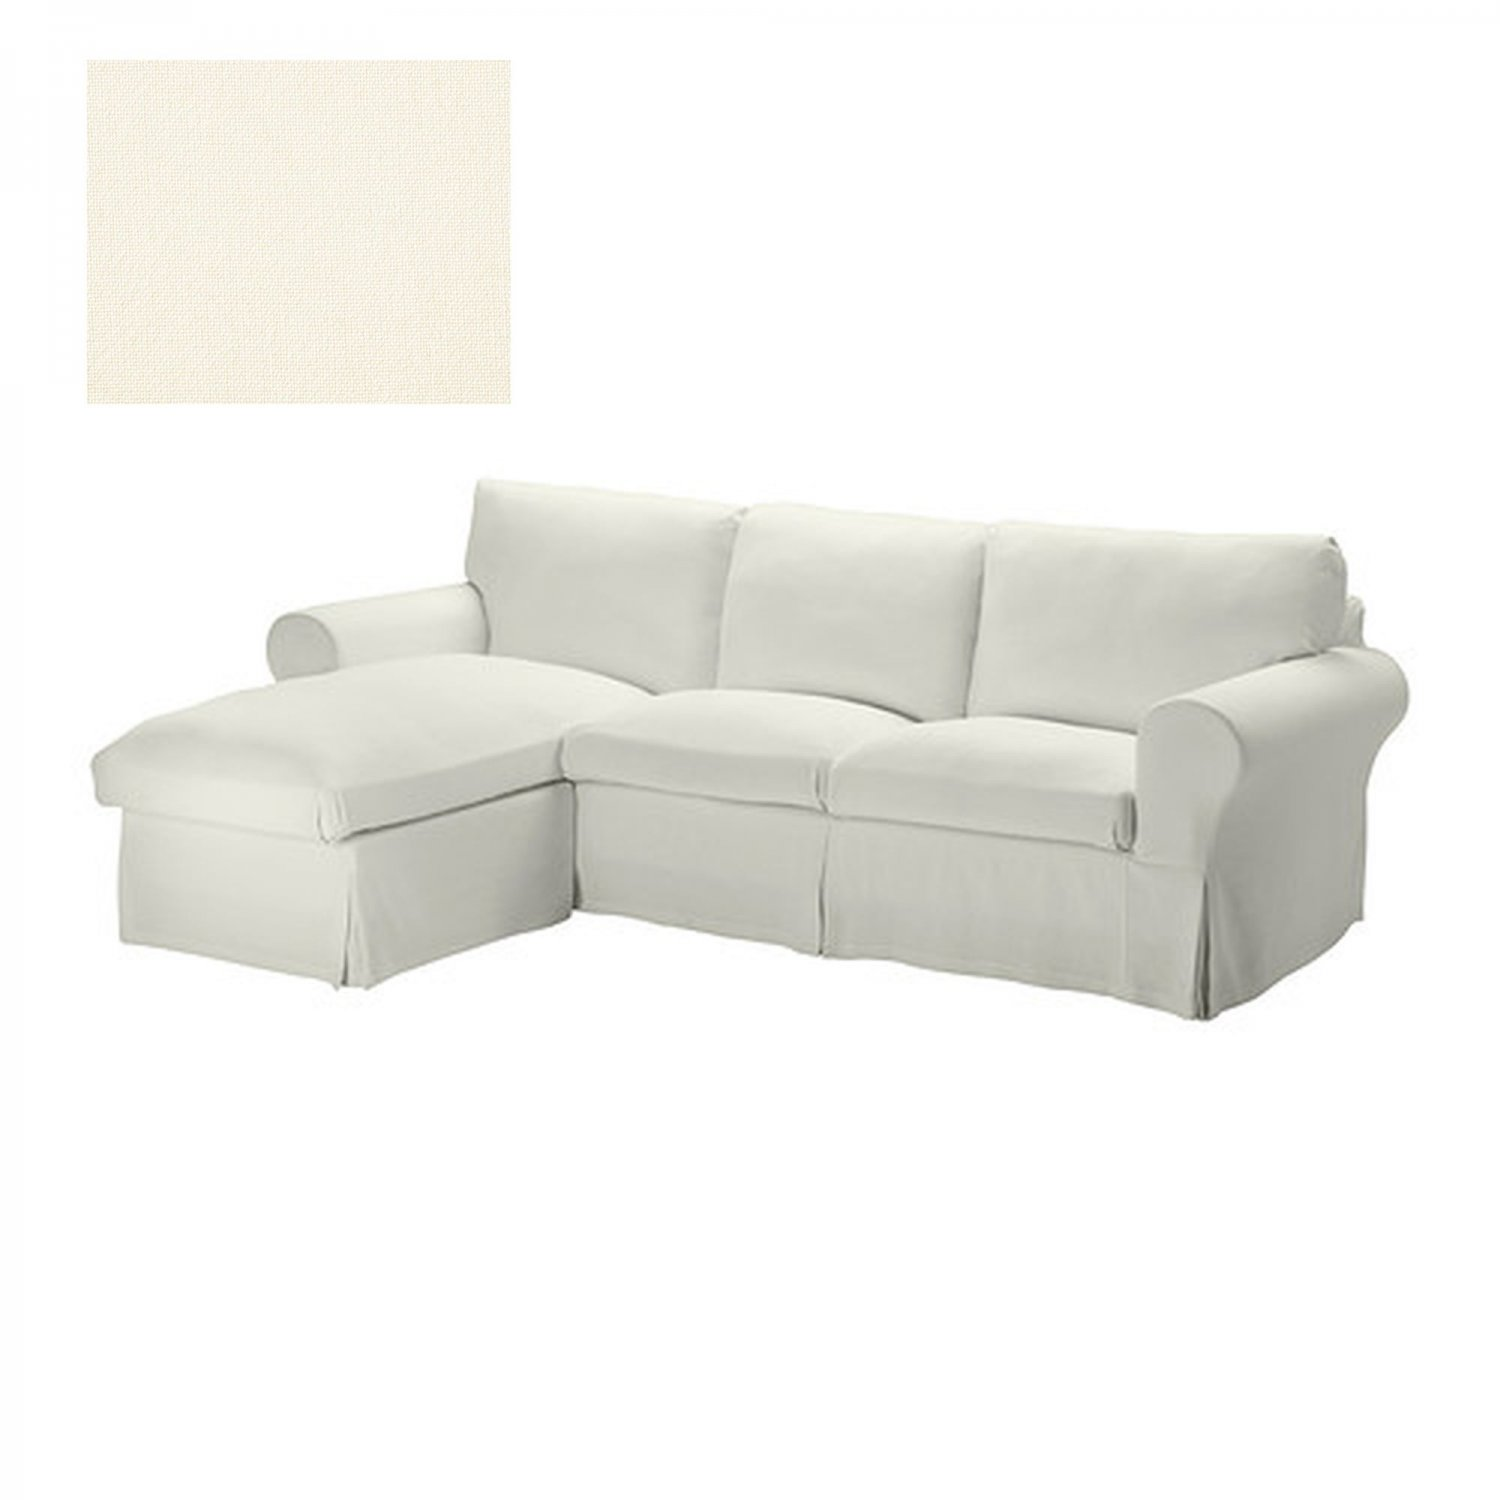 Ikea ektorp loveseat sofa w chaise slipcover 3 seat for Chaise couch cover